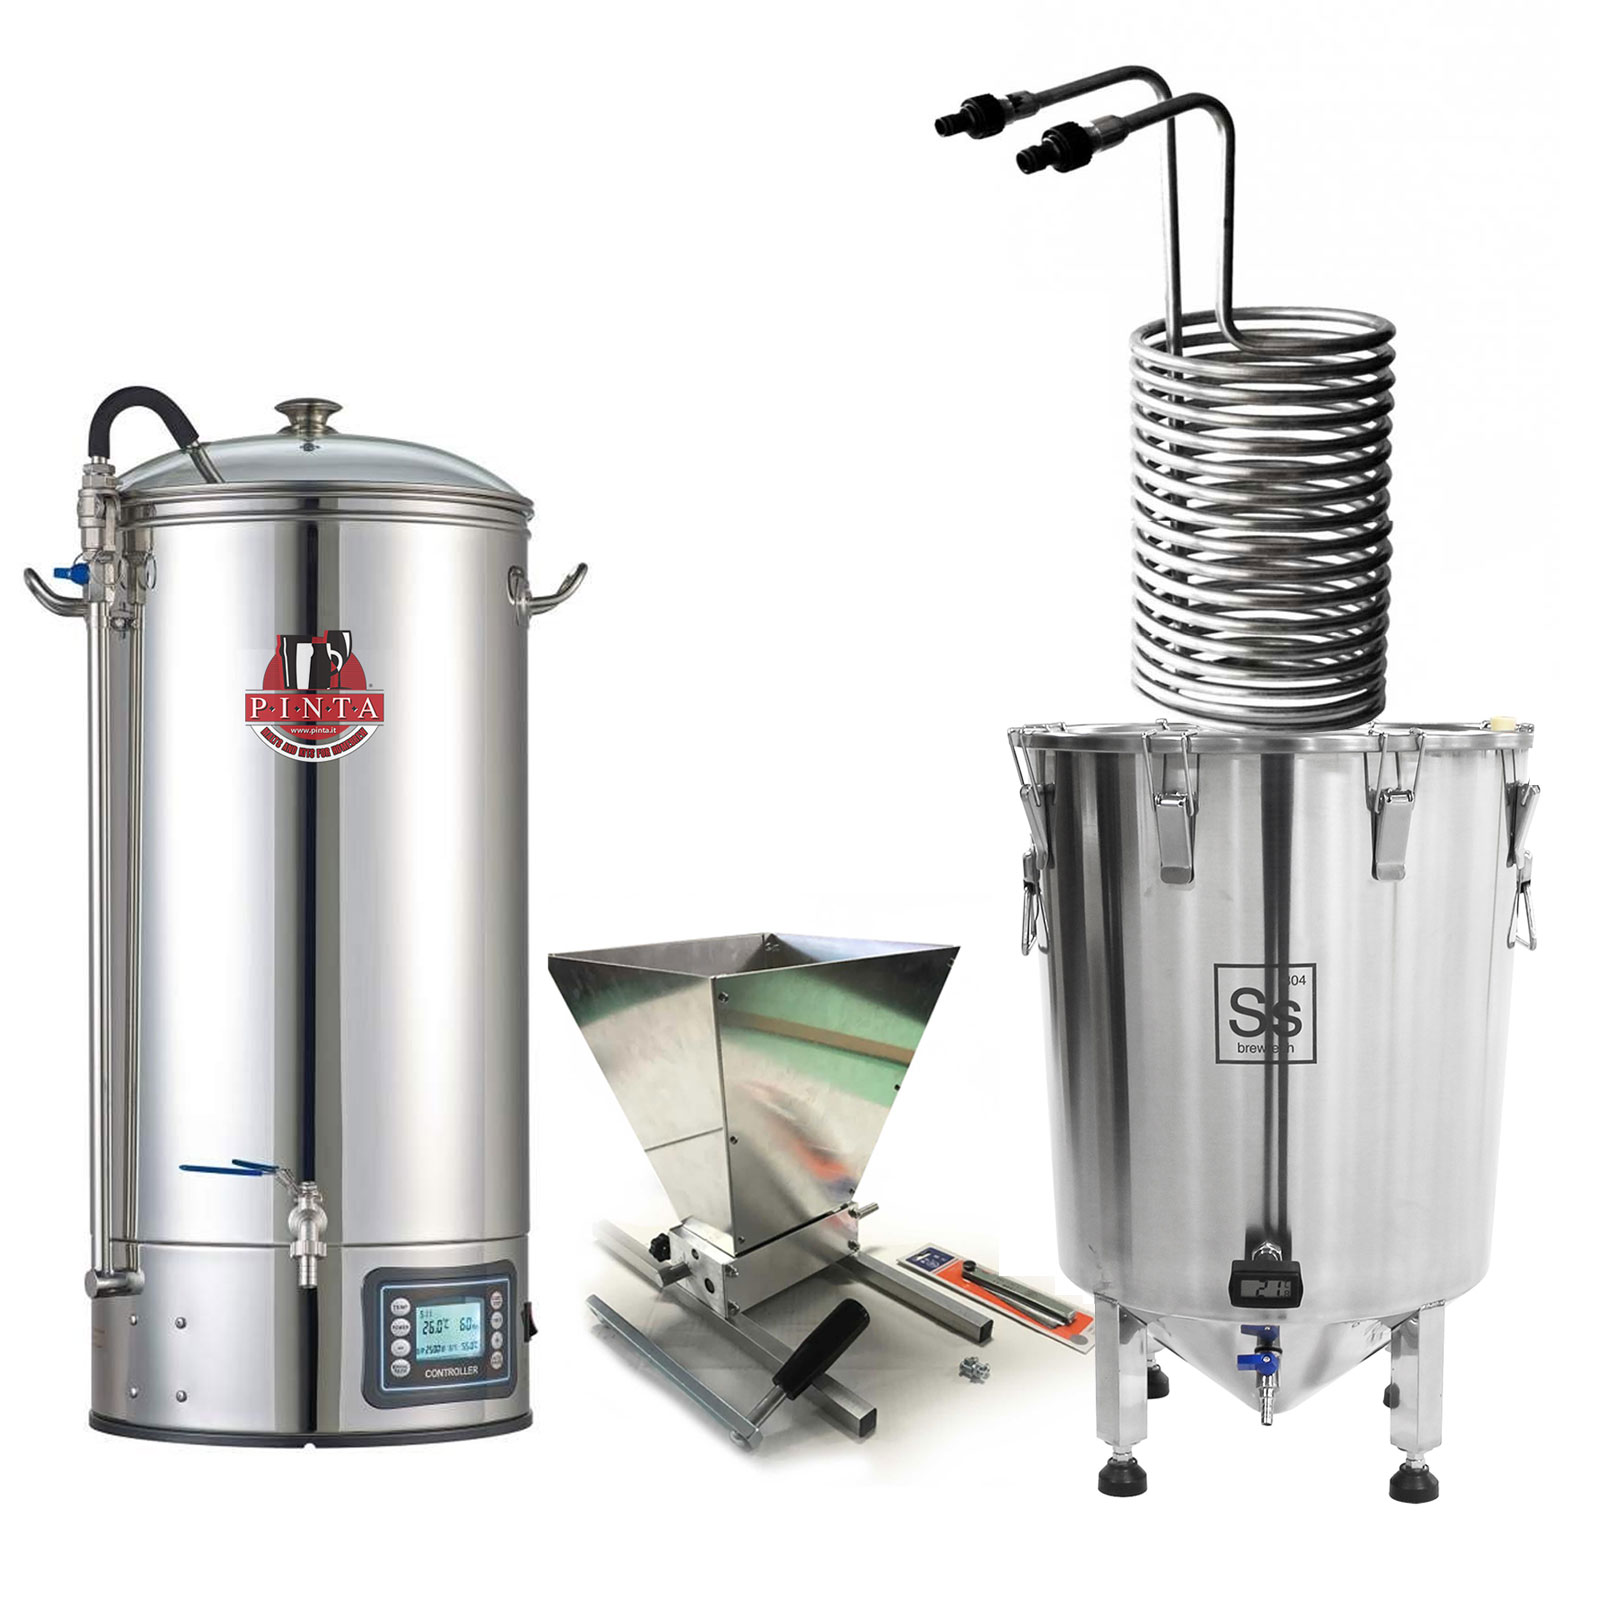 BrewMonster COMPLETE XXL Impianto All in one 50 litri + serpentina 50-70 + mulino a rulli homebrewer+ Brewbucket 14 GAL + 2 Kit Allgrain Pinta